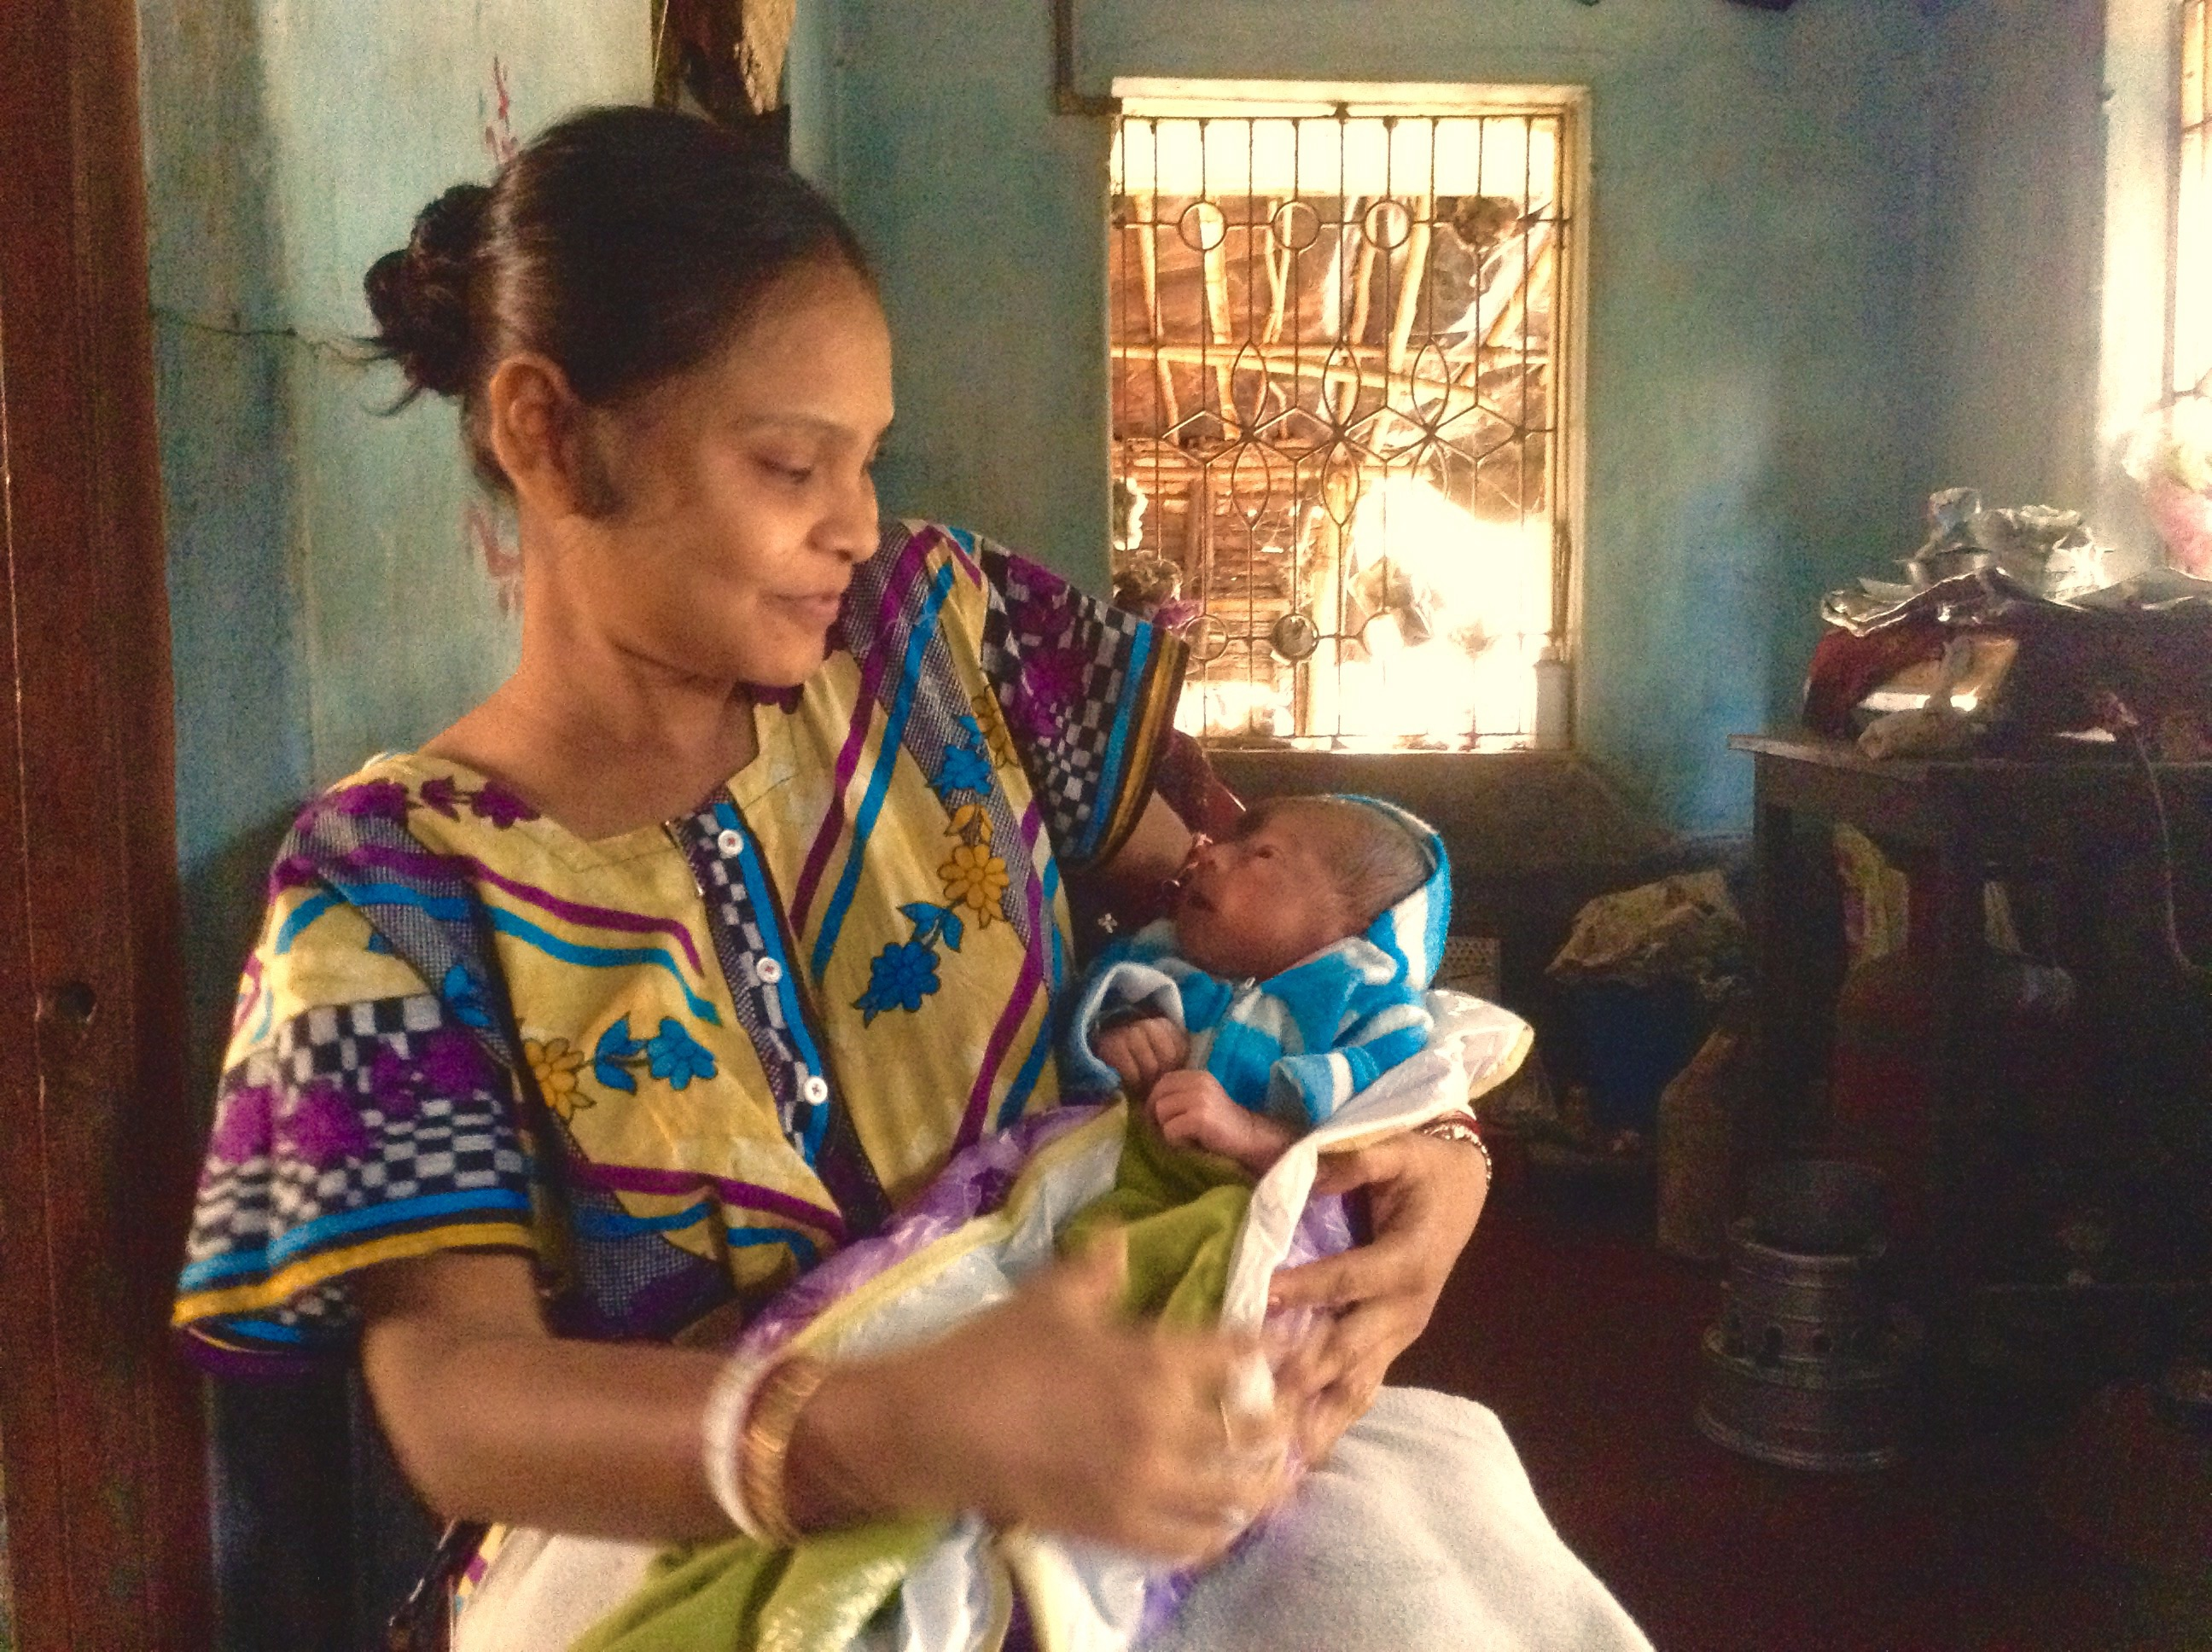 Munmun with her son, ten days after he was born. She named him Soumayan. Photo by Sohini Chattopadhyay